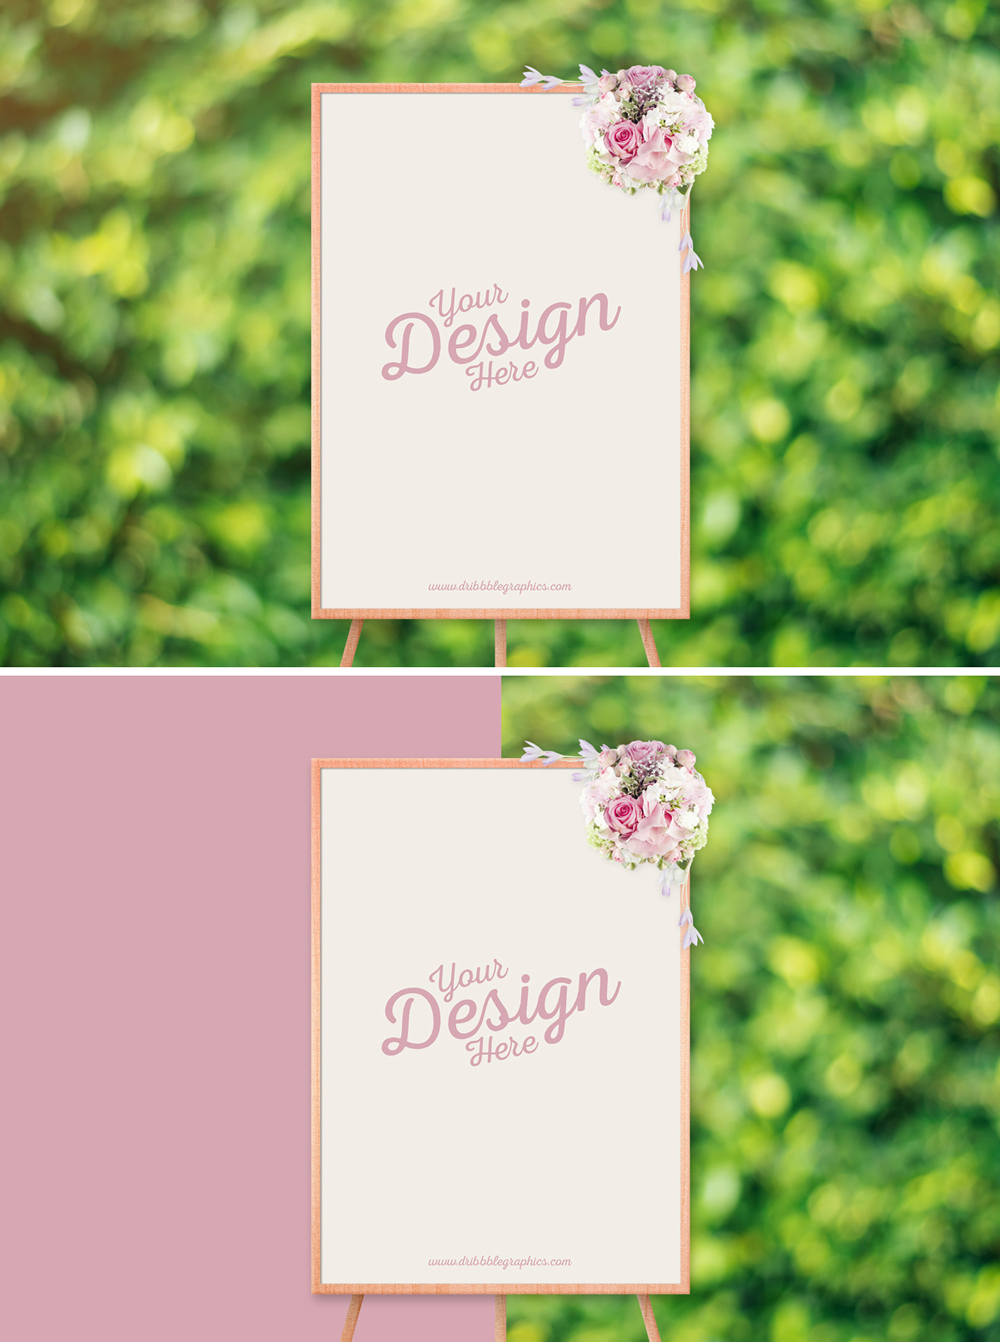 Free-Beautiful-Wedding-Ceremony-Frame-Stand-Mockup